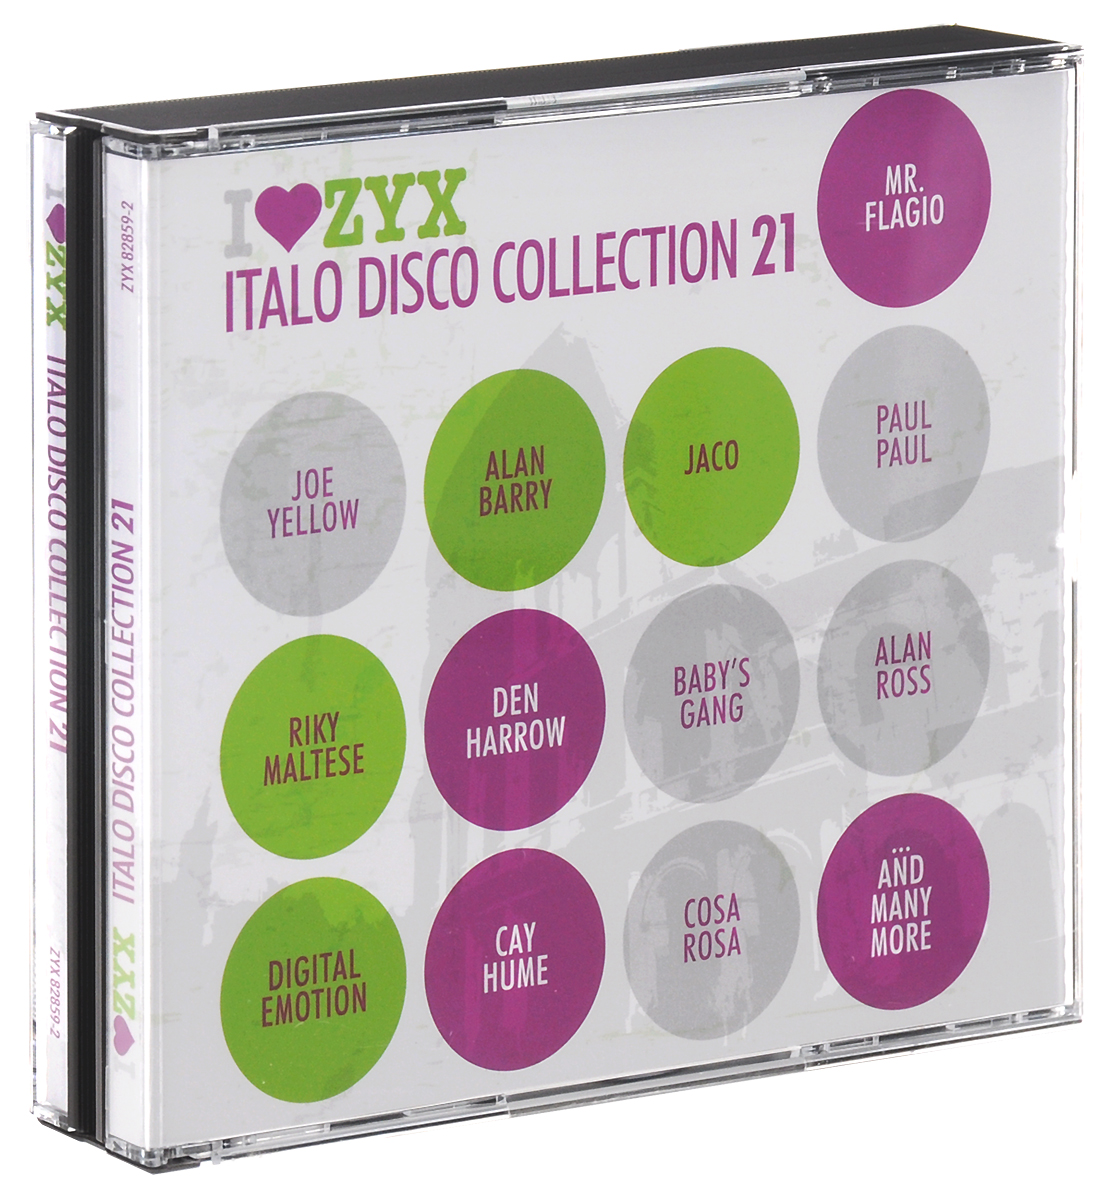 Флагио Мистер,Scotch,Дэн Хэрроу,Алан Барри Zyx Italo Disco Collection 21 (3 CD) italo disco collection 13 3 cd